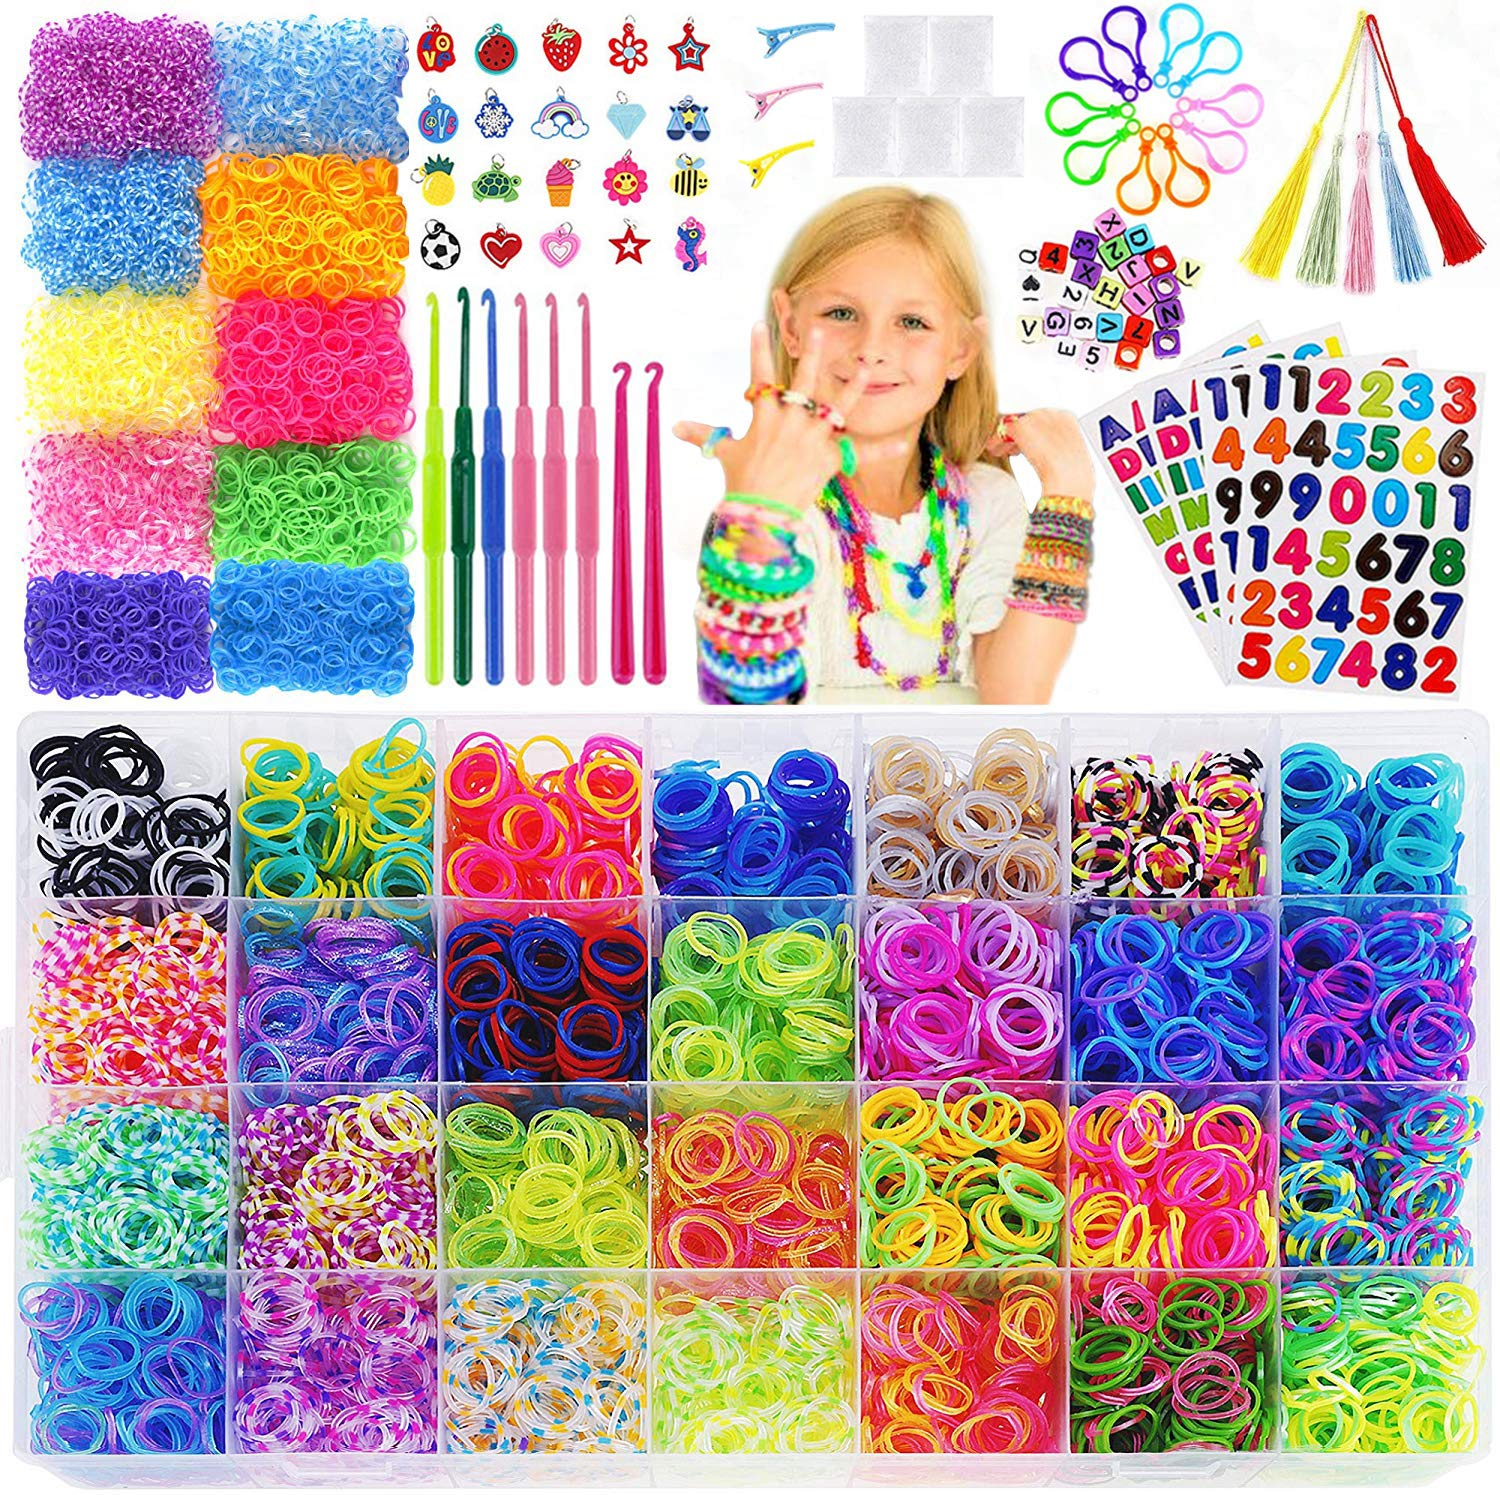 15,000+Rainbow Rubber Bands Refill Kit-56 Unique Colors Bracelet Making Kit,14,000 Premium Loom Bands,500 S Clips,25 Beads,20 Charms,10 Backpack Hooks,8 Crochet Hooks,5 Tassels,4 Stickers,3 Hair Clips 91E2BZYZ2dQL